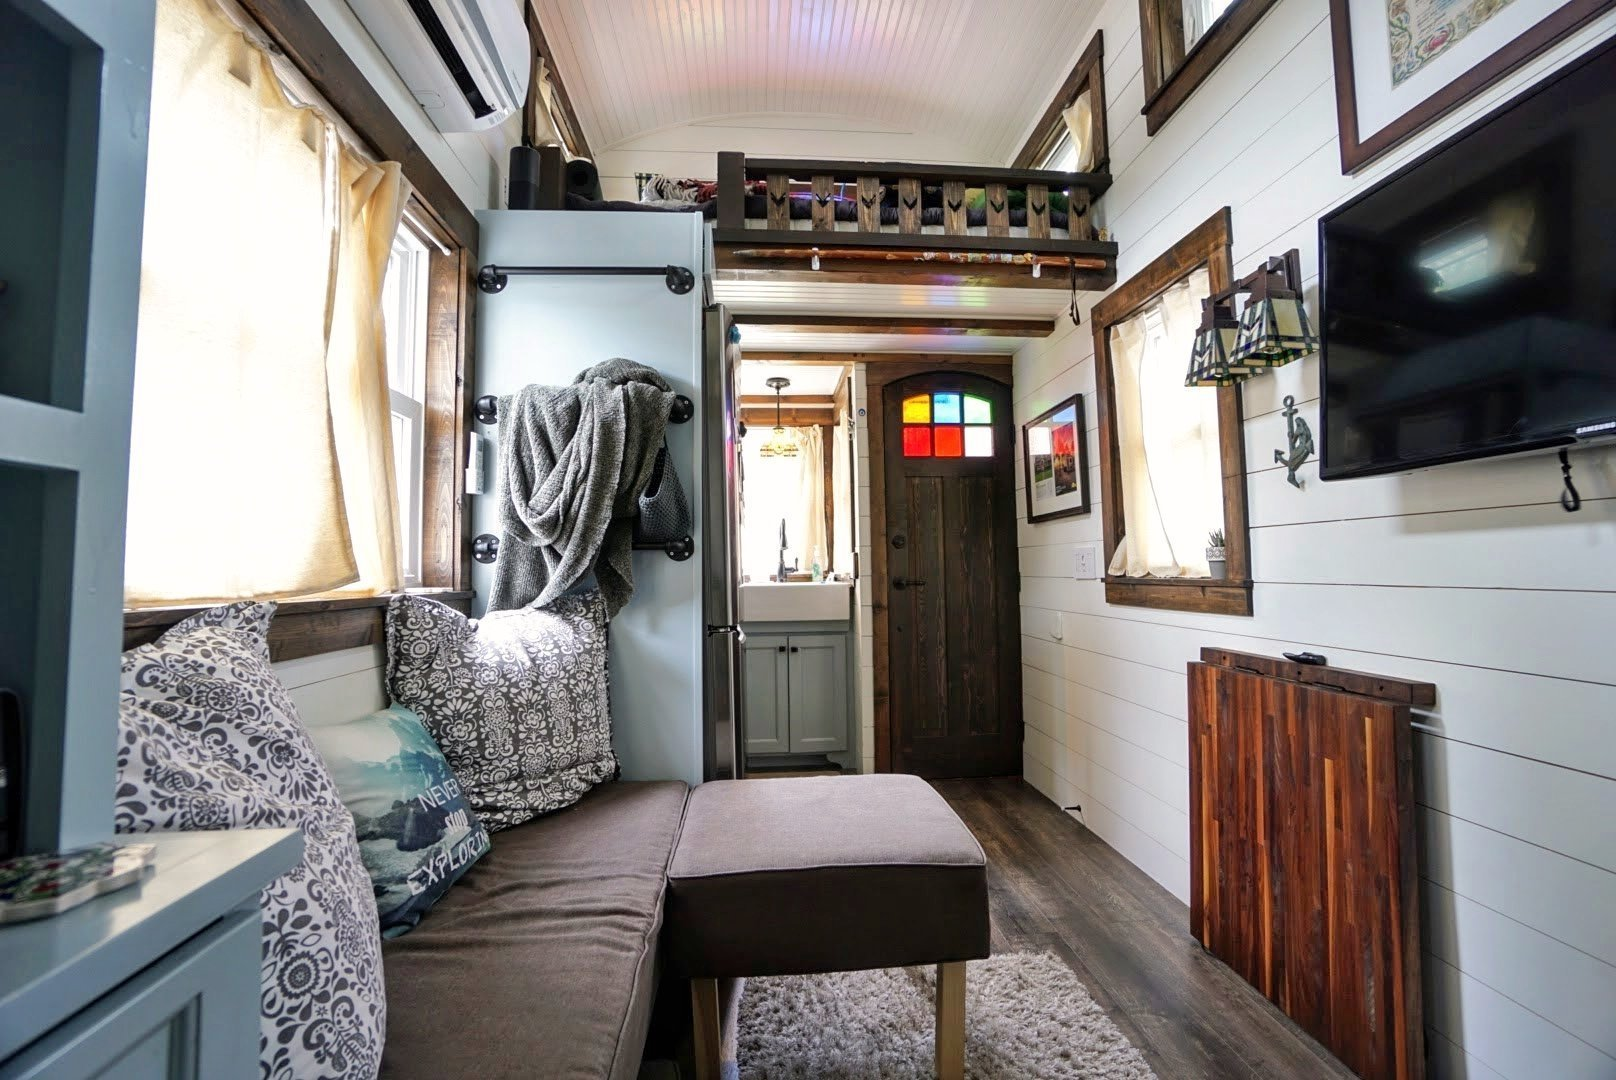 Best tips & tricks for saving space in a tiny home? - #AskTheDreamTeam